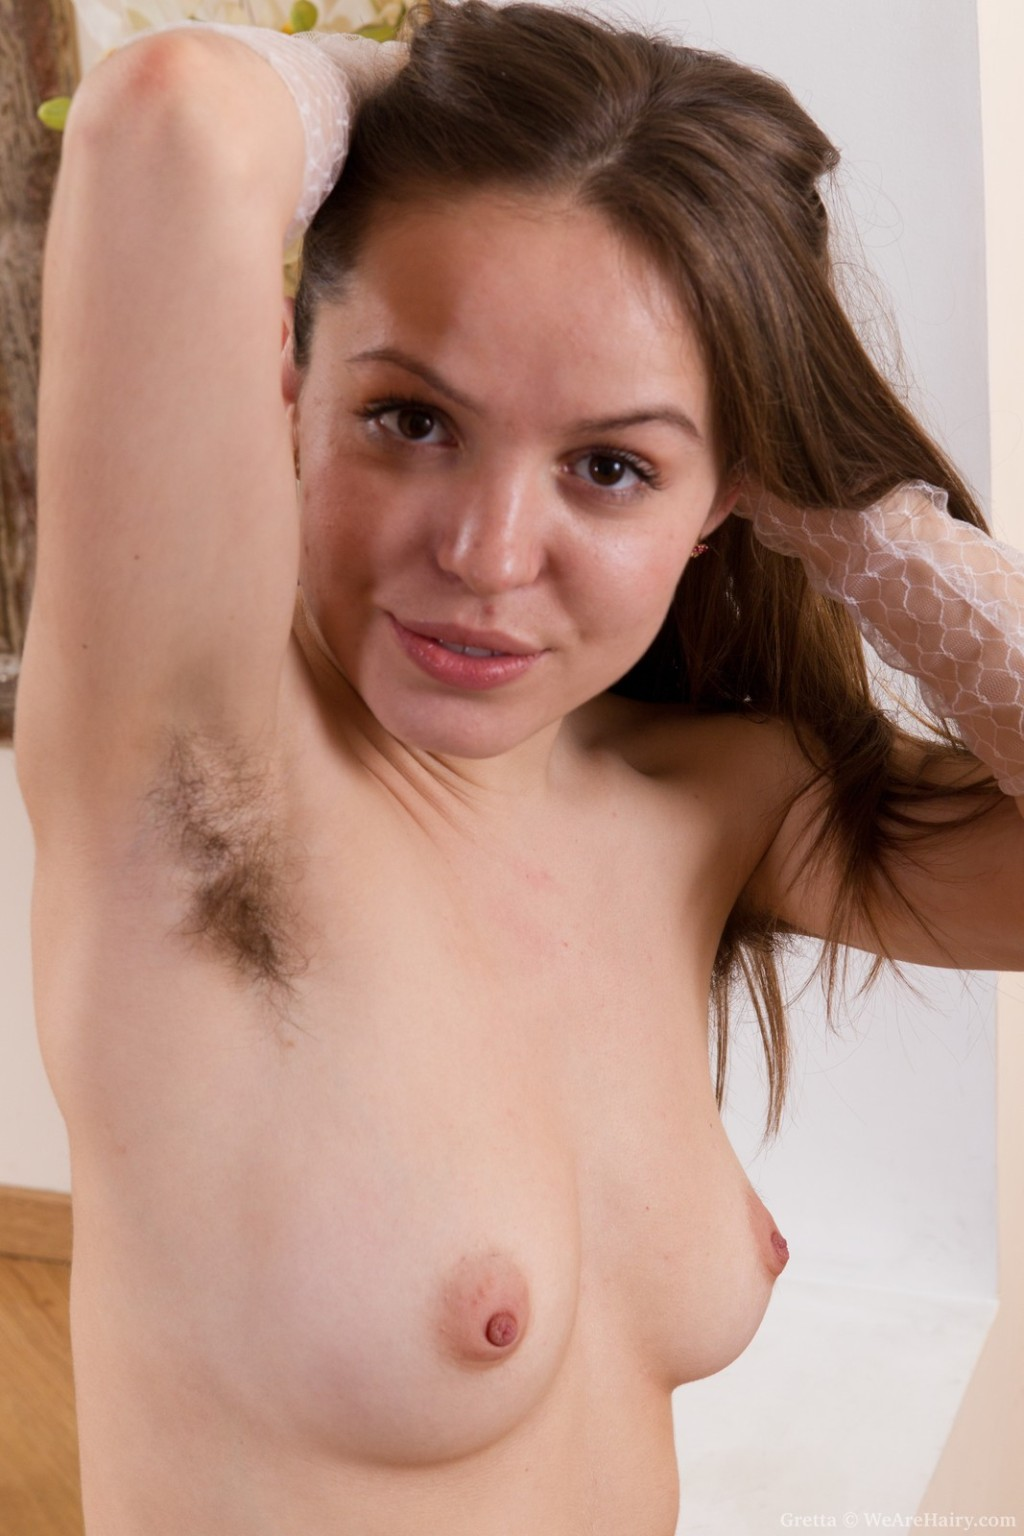 Hairy cutie gretta plays with her nylons